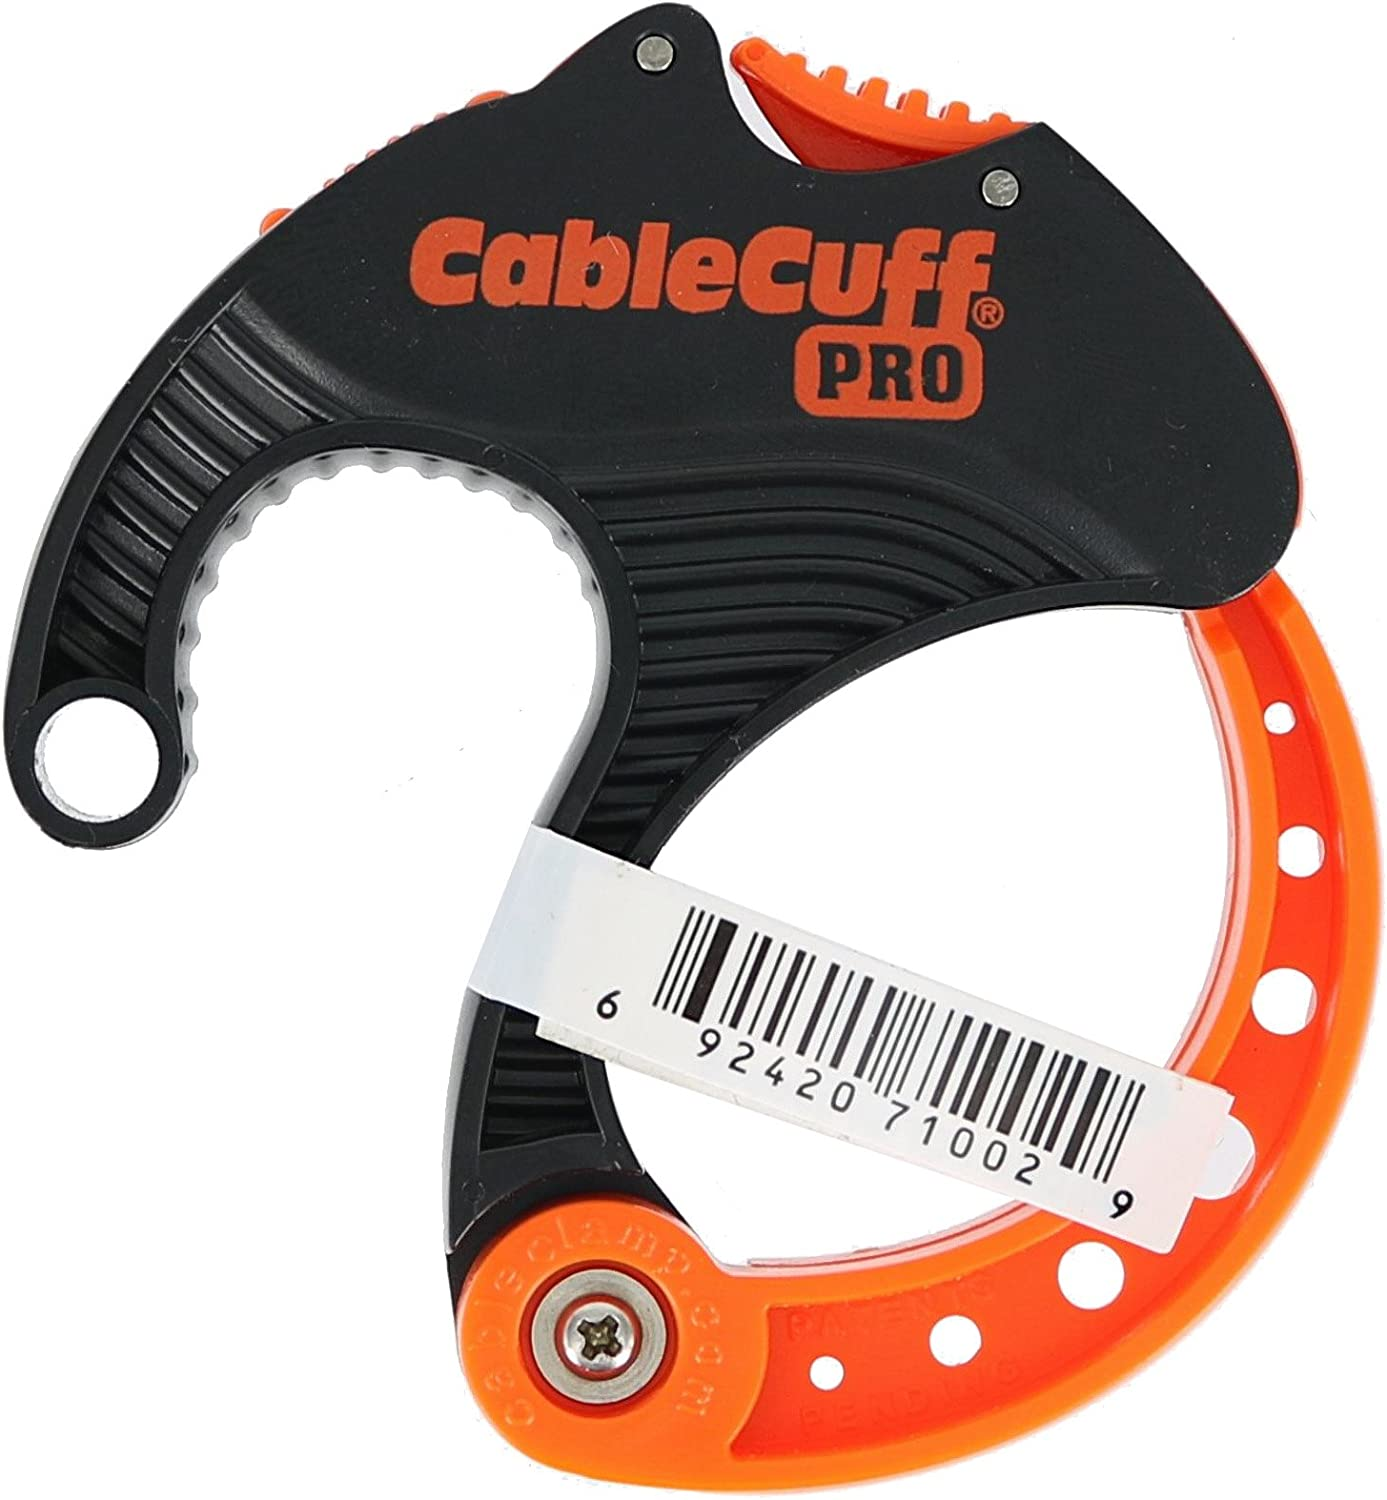 Cable Cuff PRO Medium Single Adjustable 2 Inch Diameter Reusable Cable Tie Replacement for Extension Cords or Electronics